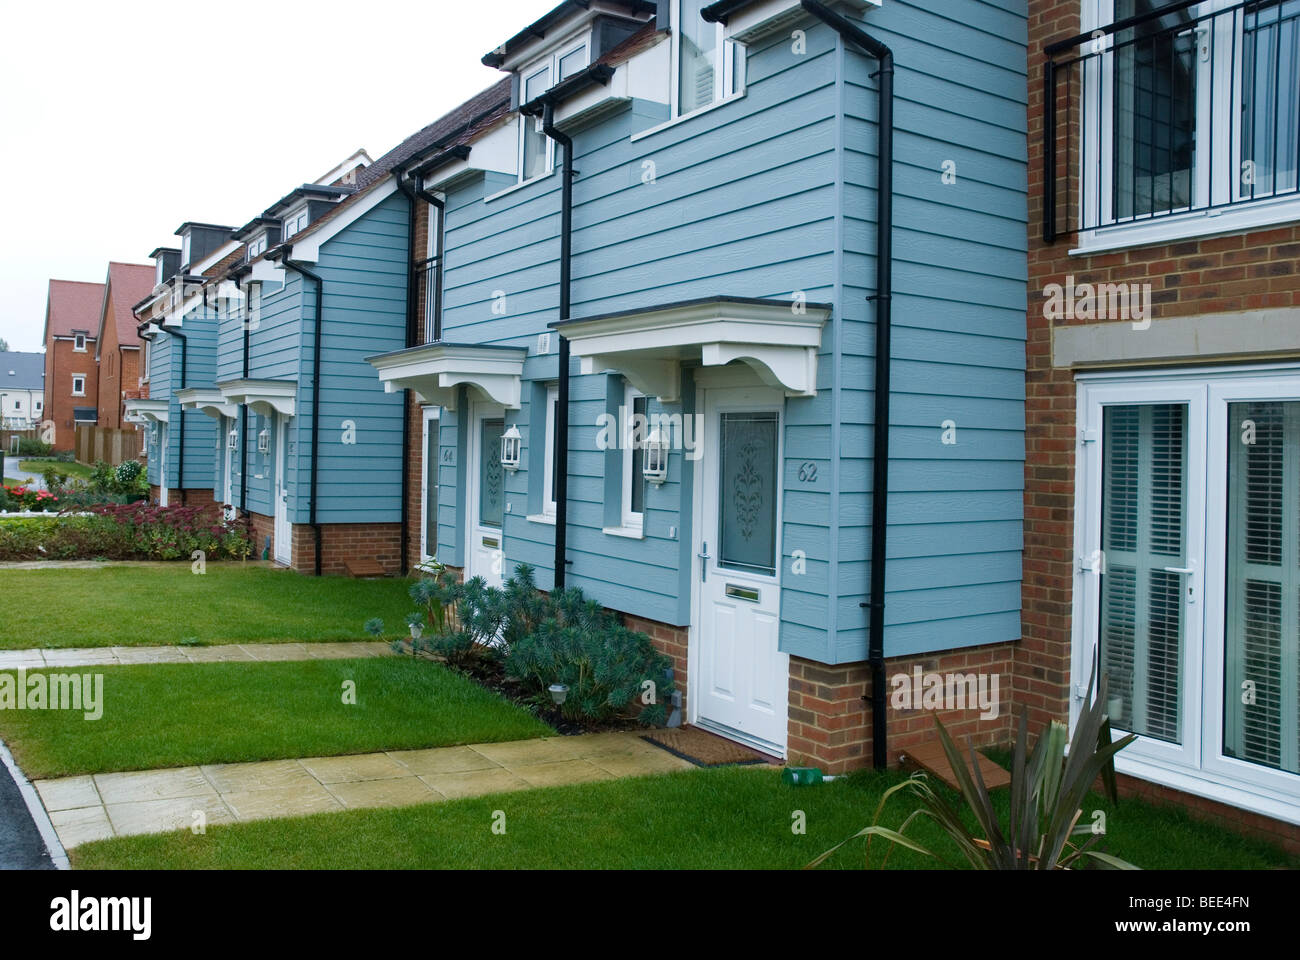 Row Of Houses For Sale Stock Photos & Row Of Houses For Sale Stock ...